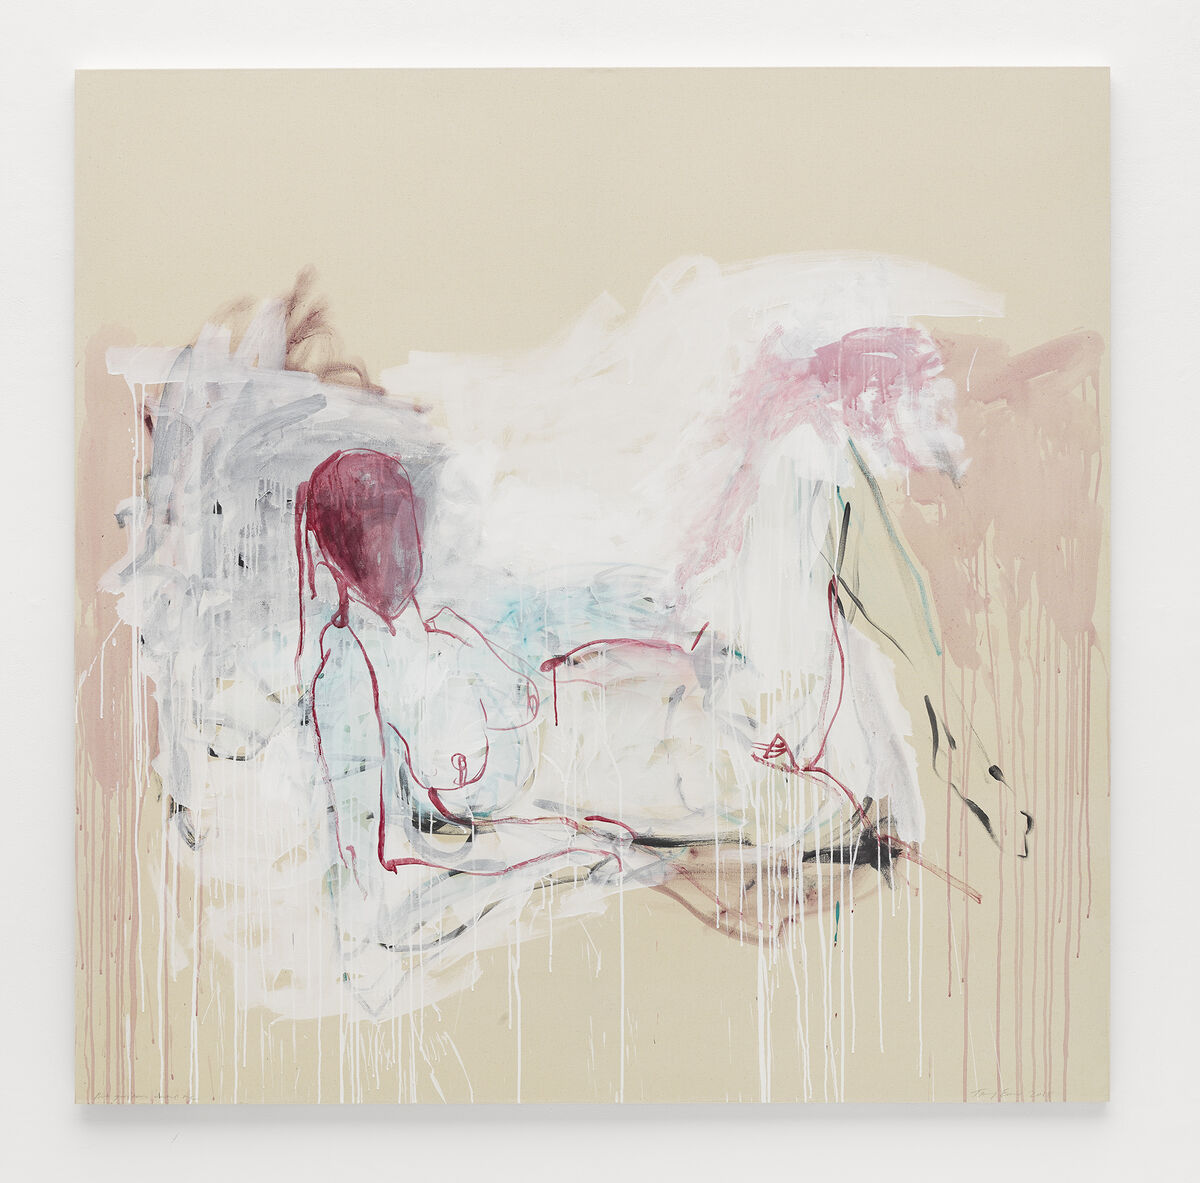 Tracey Emin, But you never wanted me, 2018. © Tracey Emin. All rights reserved, DACS 2017. Photo by Theo Christelis © White Cube. Courtesy of White Cube.